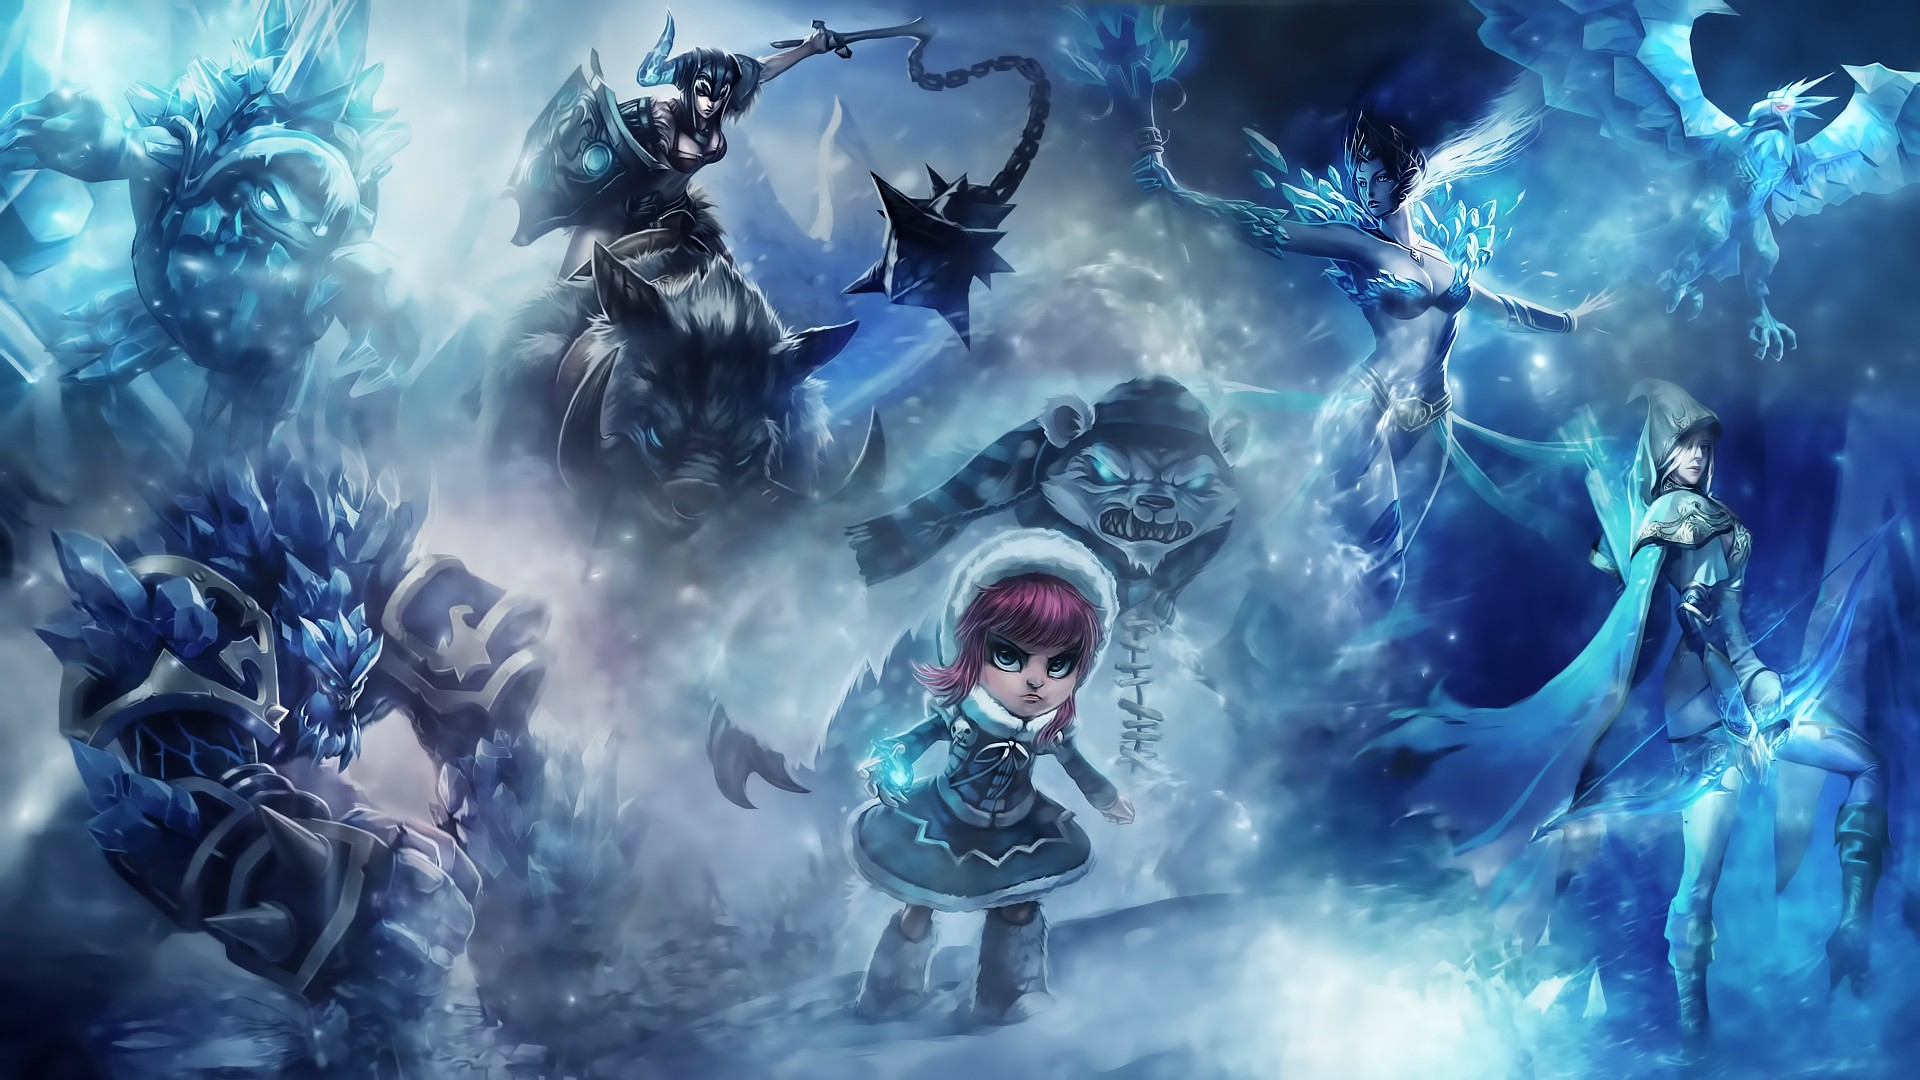 Dual Monitor Wallpaper League Of Legends: League Of Legends HD Wallpaper